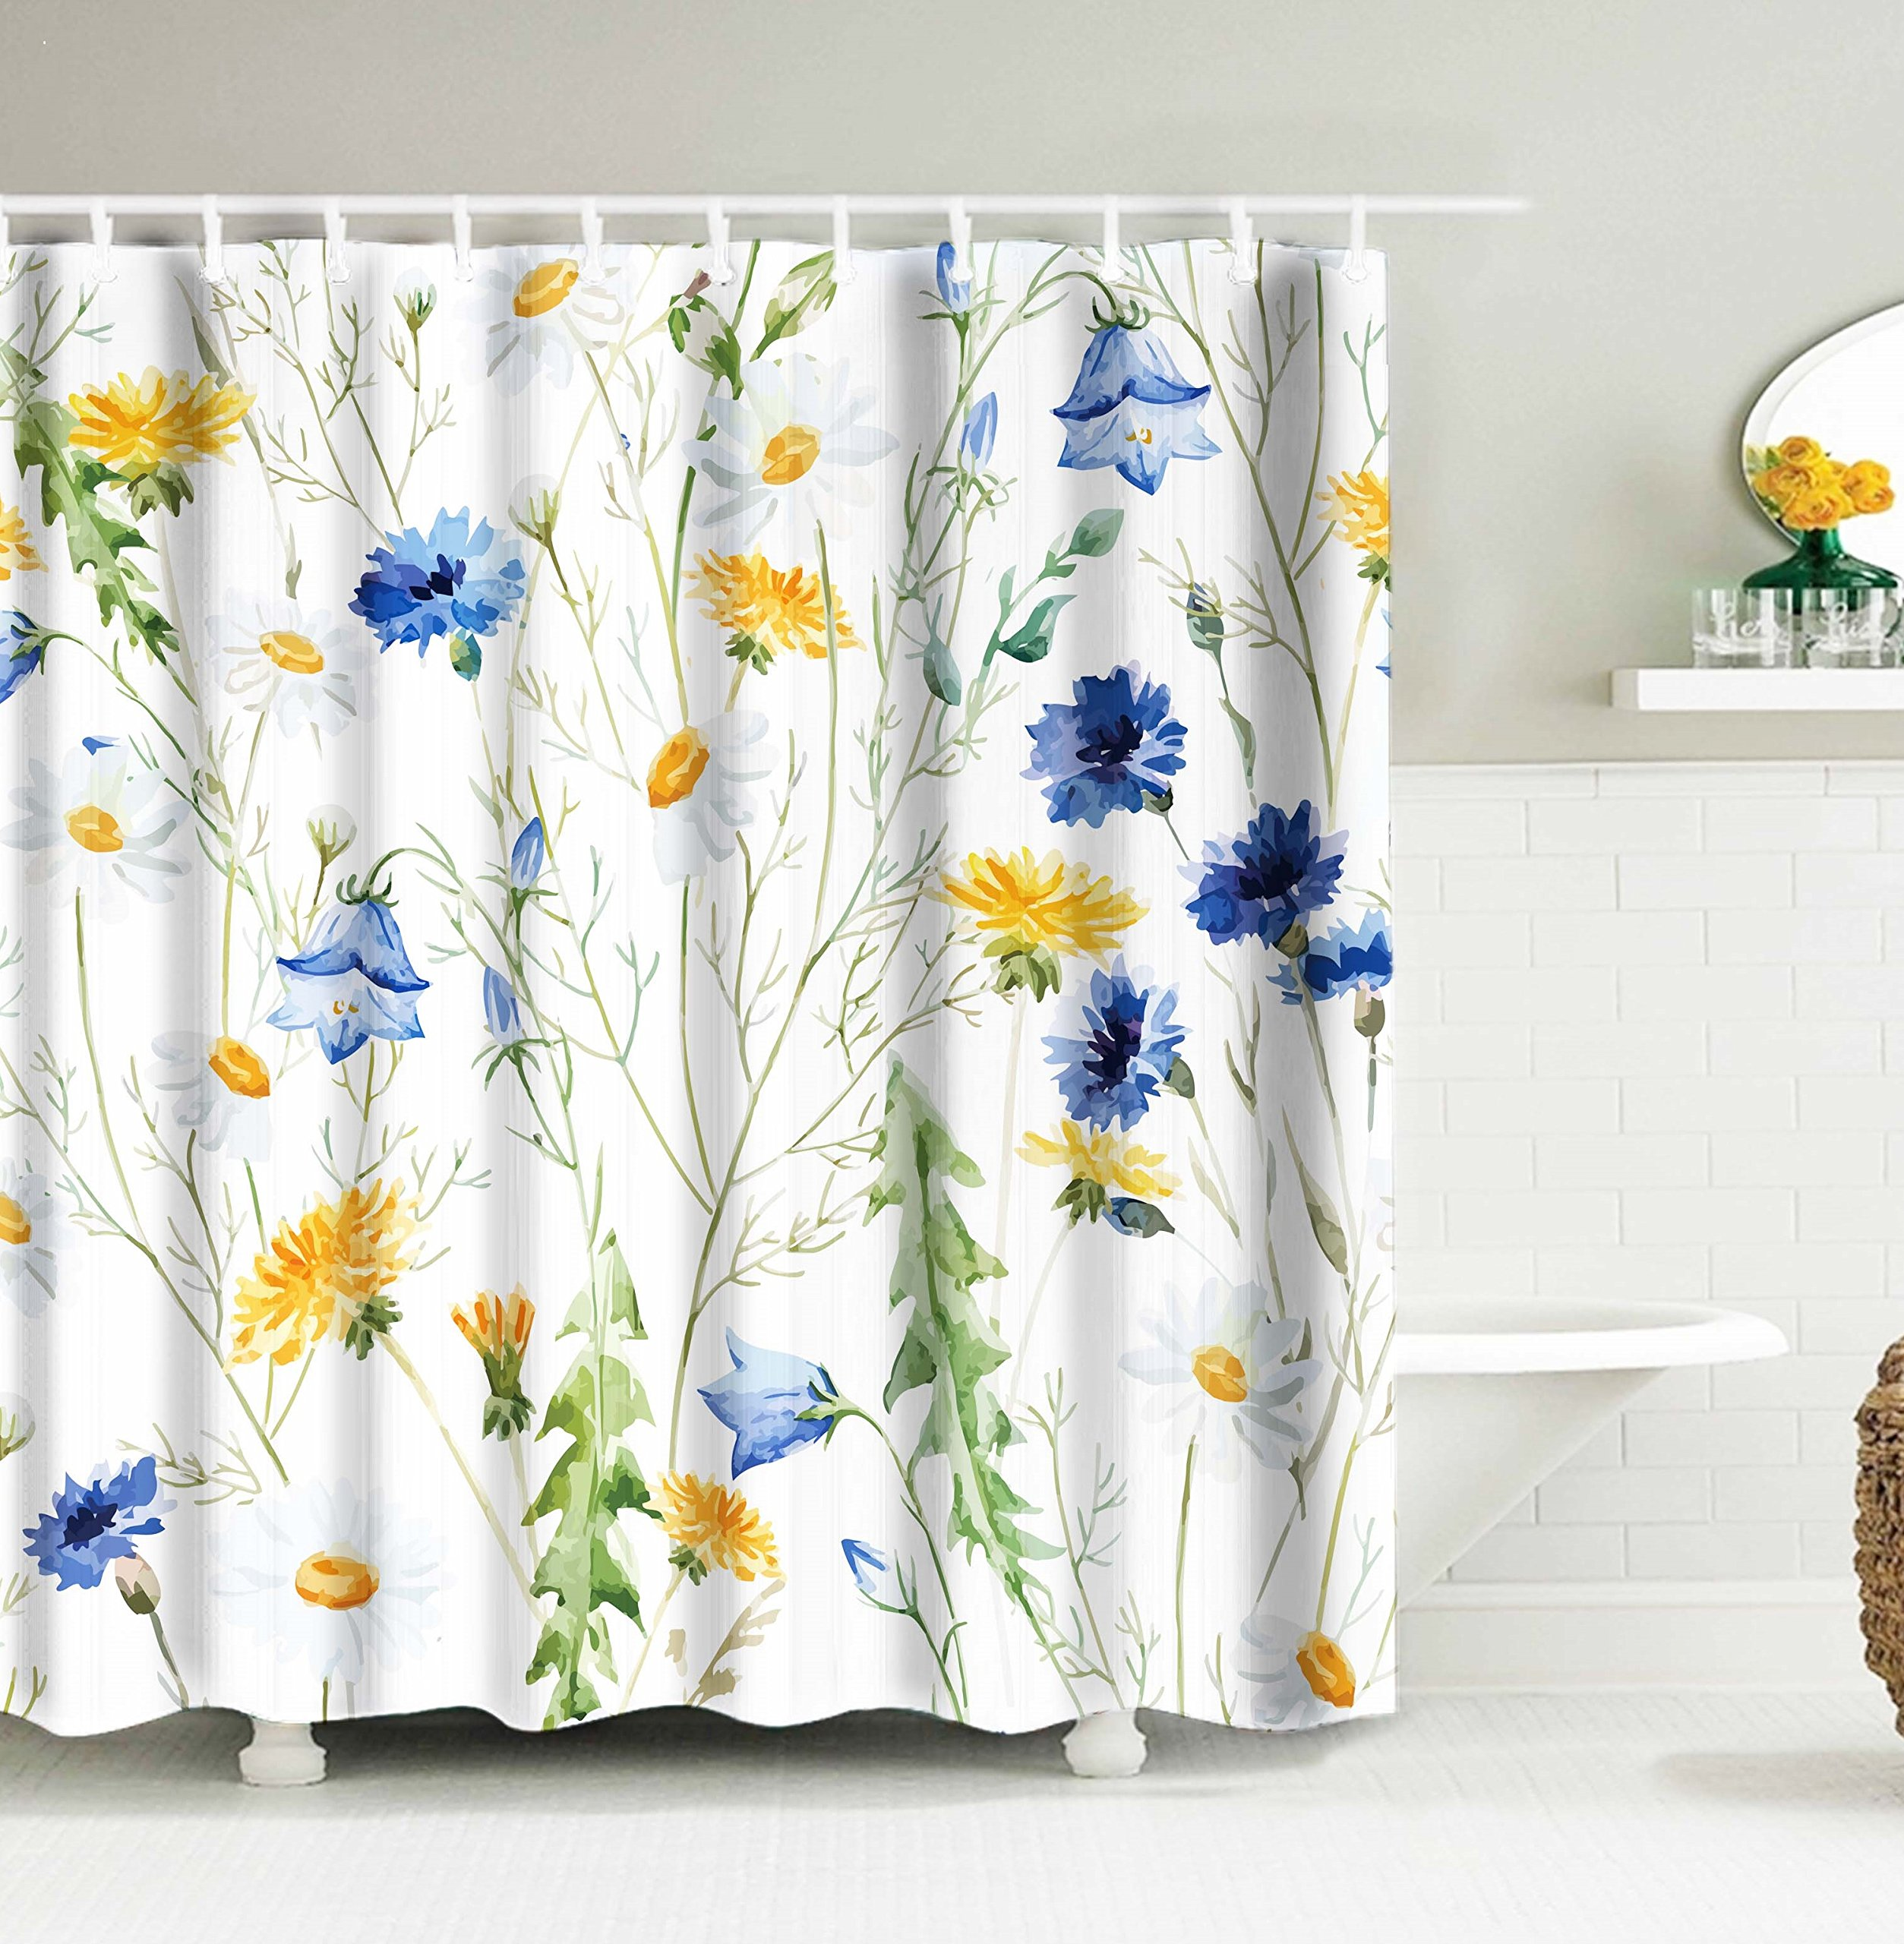 Get Quotations Orange Watercolor Flower Wildflowers Cornflowers Daisies Blooms Floral Pattern Polyester Fabric Bathroom Shower Curtain72X72Inch